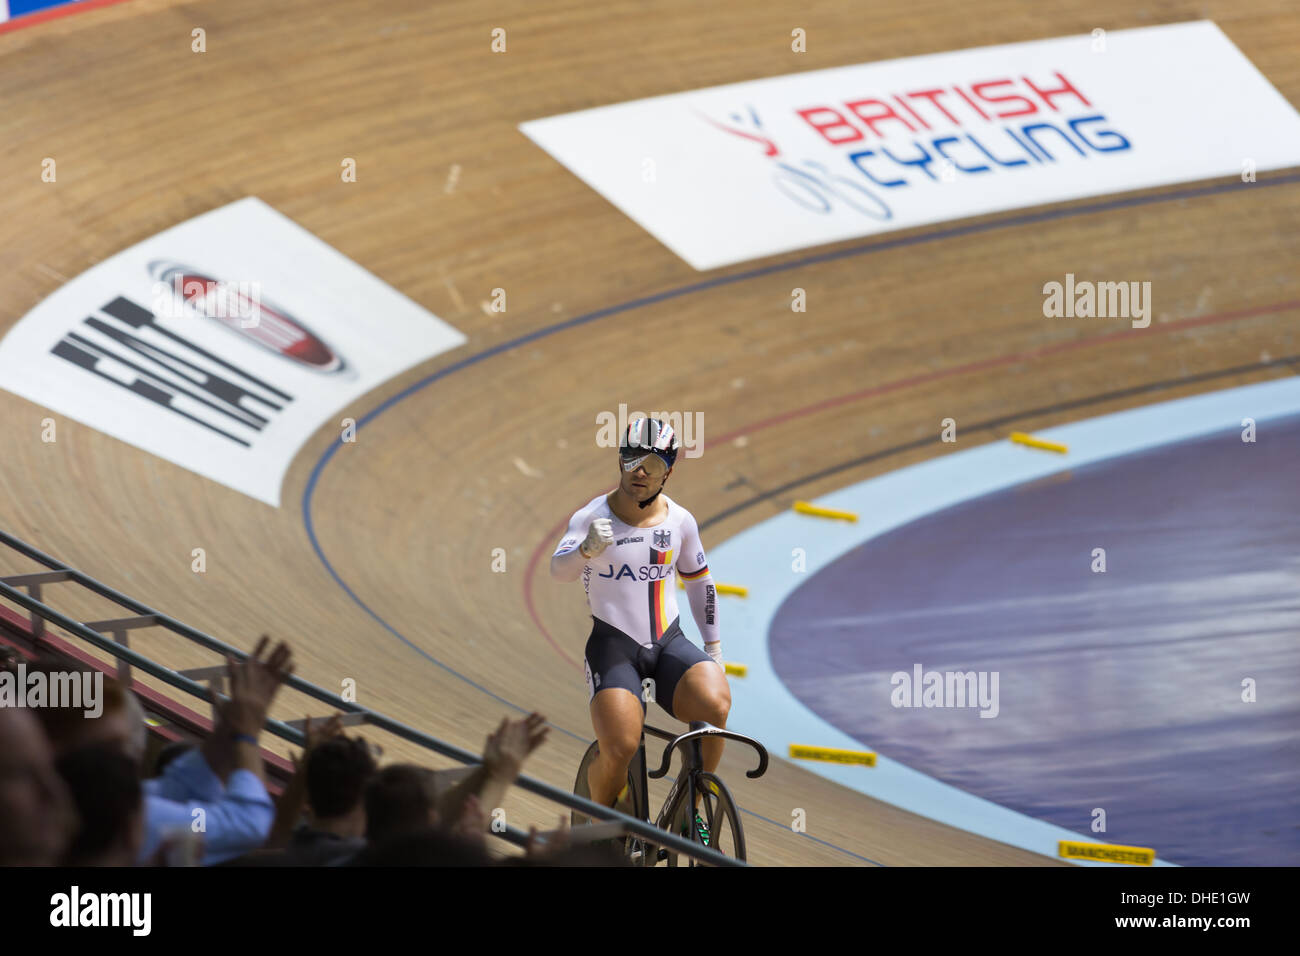 Robert Forstemann acknowledges his win at the UCI Track Cycling World Cup Manchester 2013. - Stock Image